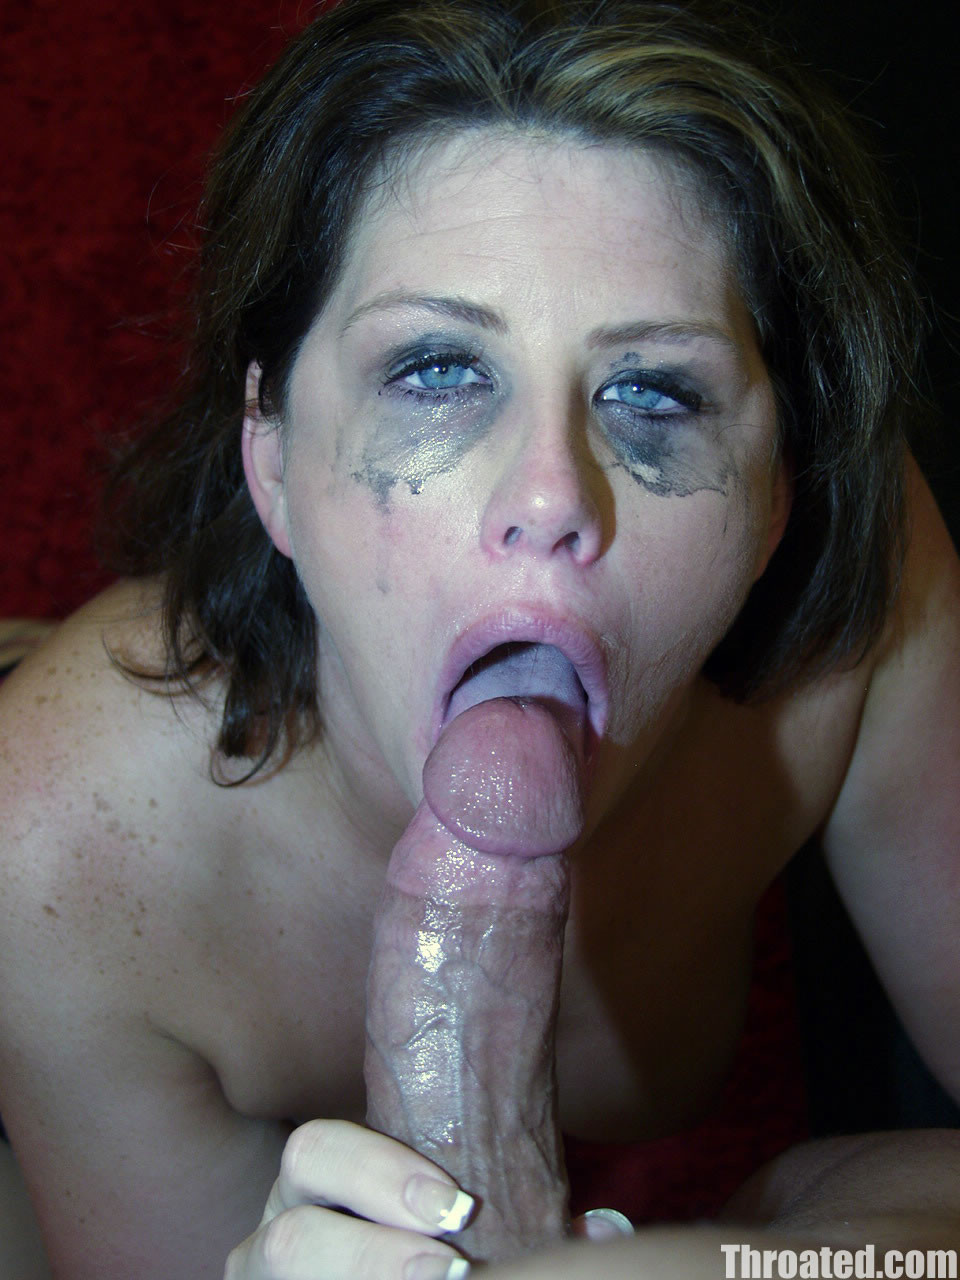 Cry blowjob galleries images